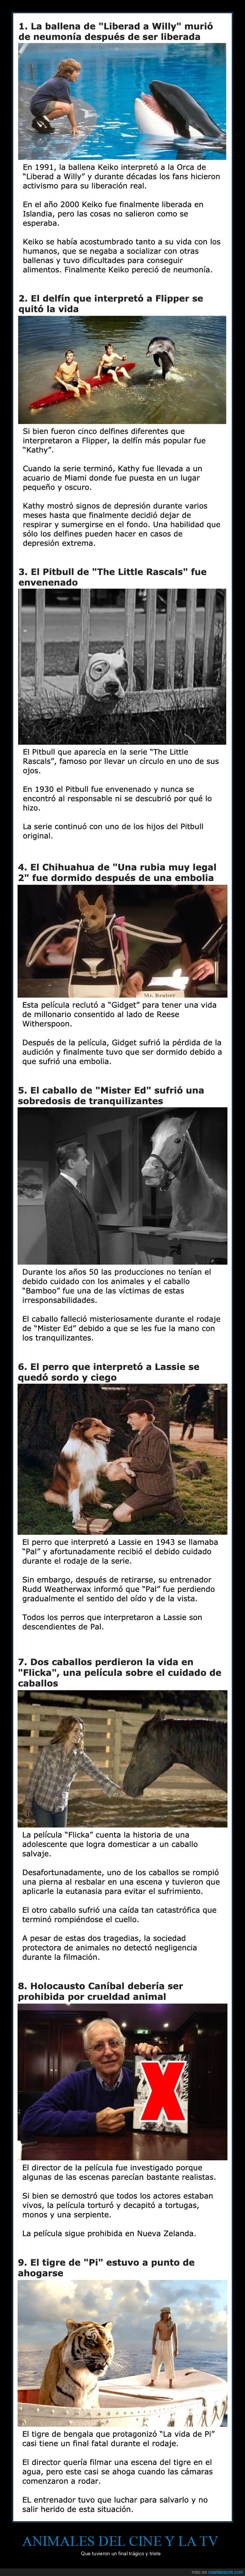 animales,cine,final trágico